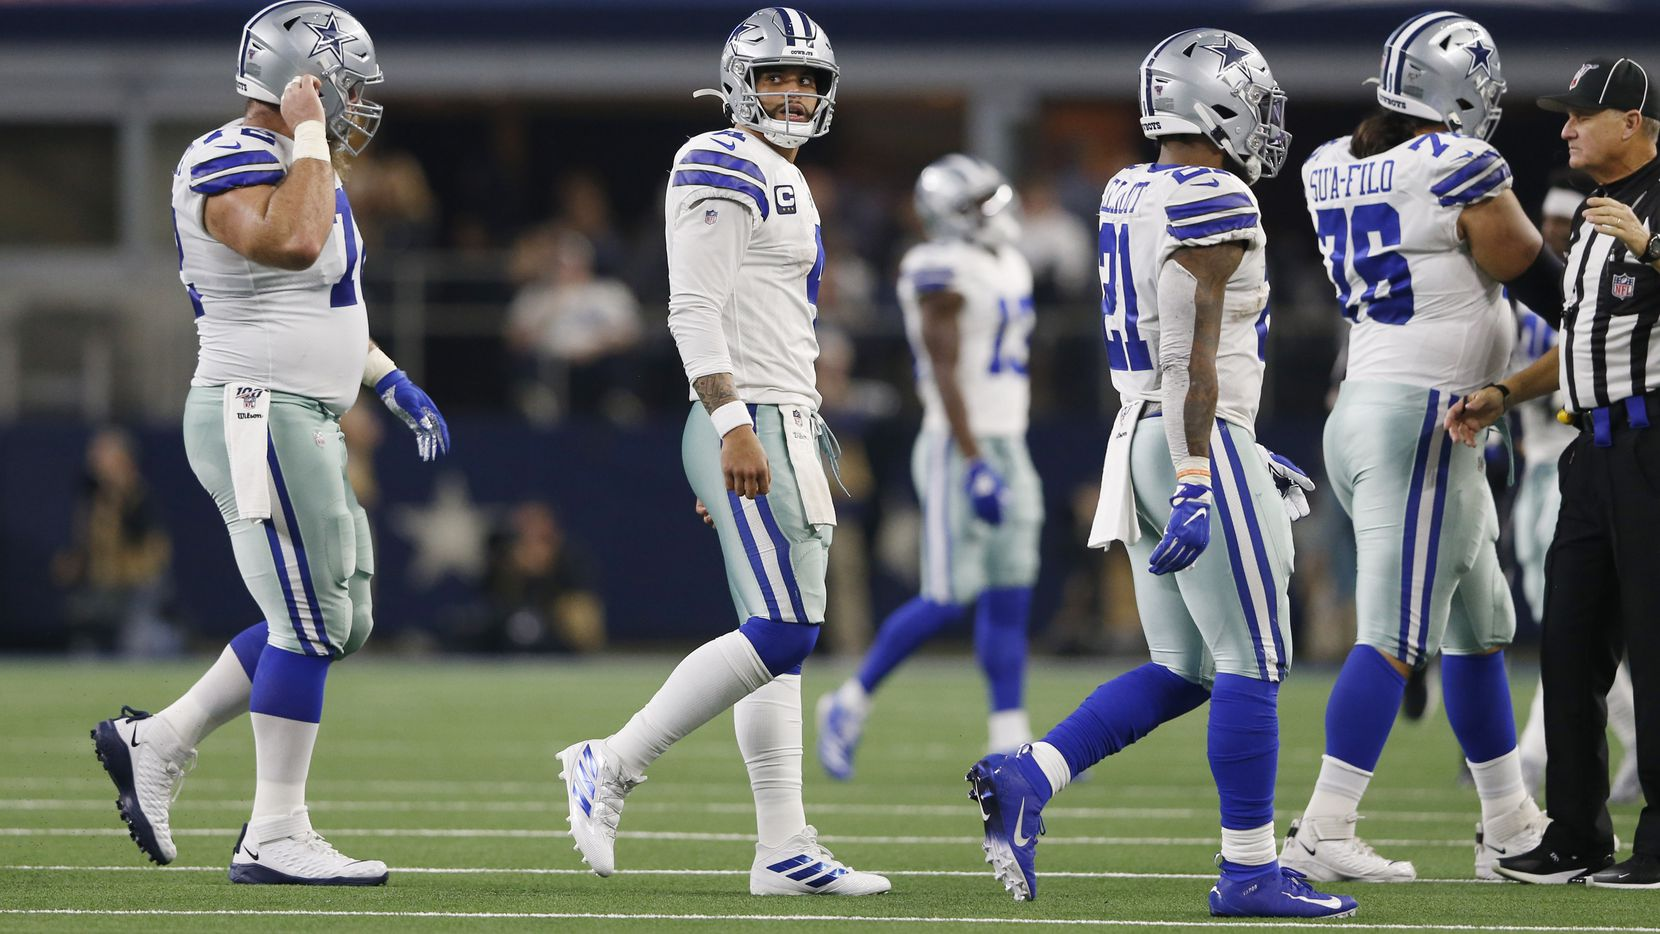 Dallas Cowboys quarterback Dak Prescott (4) looks back as he walks to the bench after Buffalo Bills defensive tackle Ed Oliver (91) stripped the ball from him forcing a turnover during the first half of play at AT&T Stadium in Arlington, Texas on Thursday, November 28, 2019. Dallas Cowboys center Travis Frederick (72), Dallas Cowboys running back Ezekiel Elliott (21) and Dallas Cowboys offensive guard Xavier Su'a-Filo (76) make their way to the bench as well. (Vernon Bryant/The Dallas Morning News)